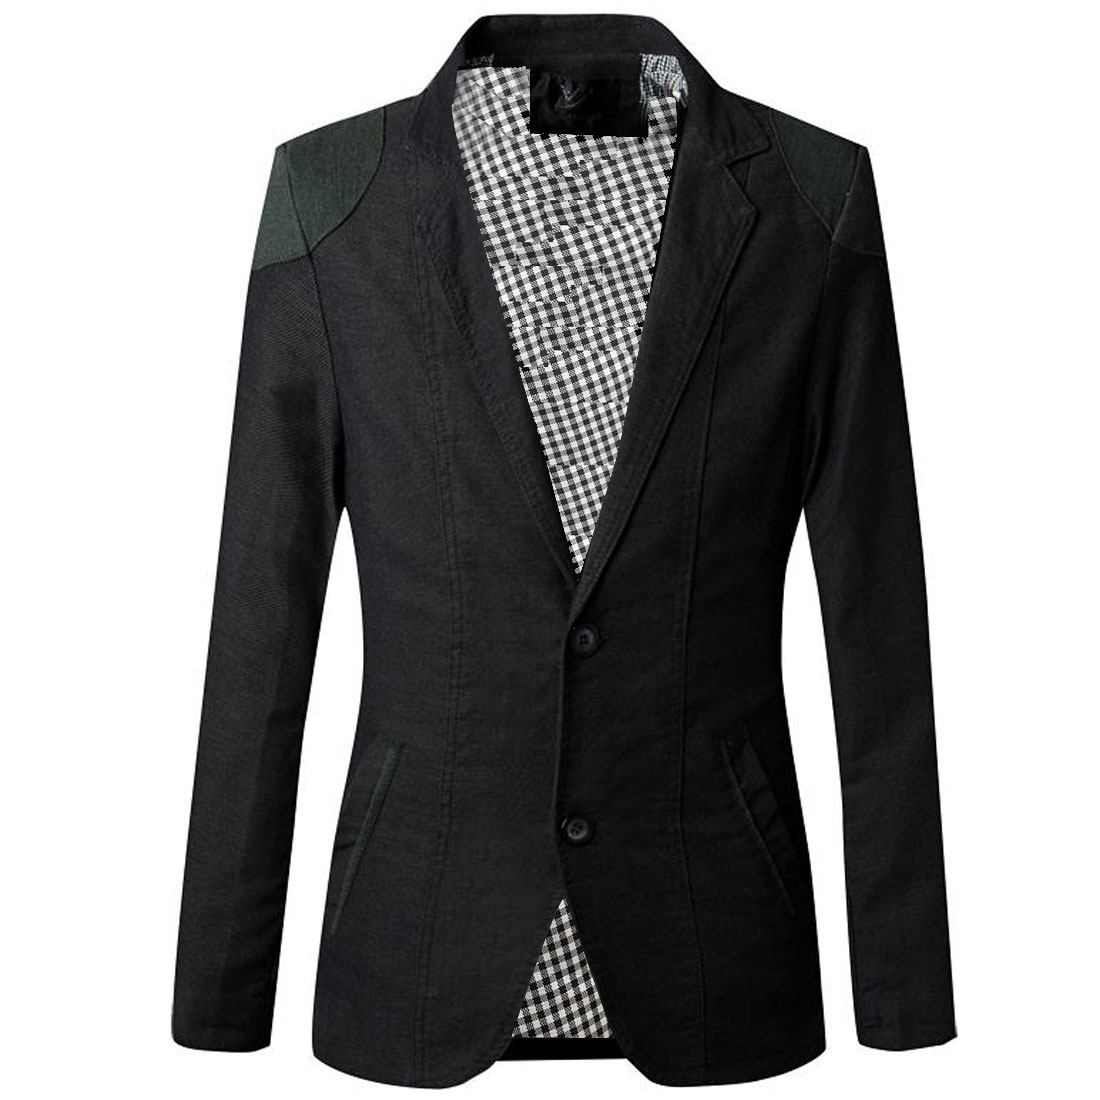 Men Two Button Long Sleeve Plaids Lining Panel Blazer Black S